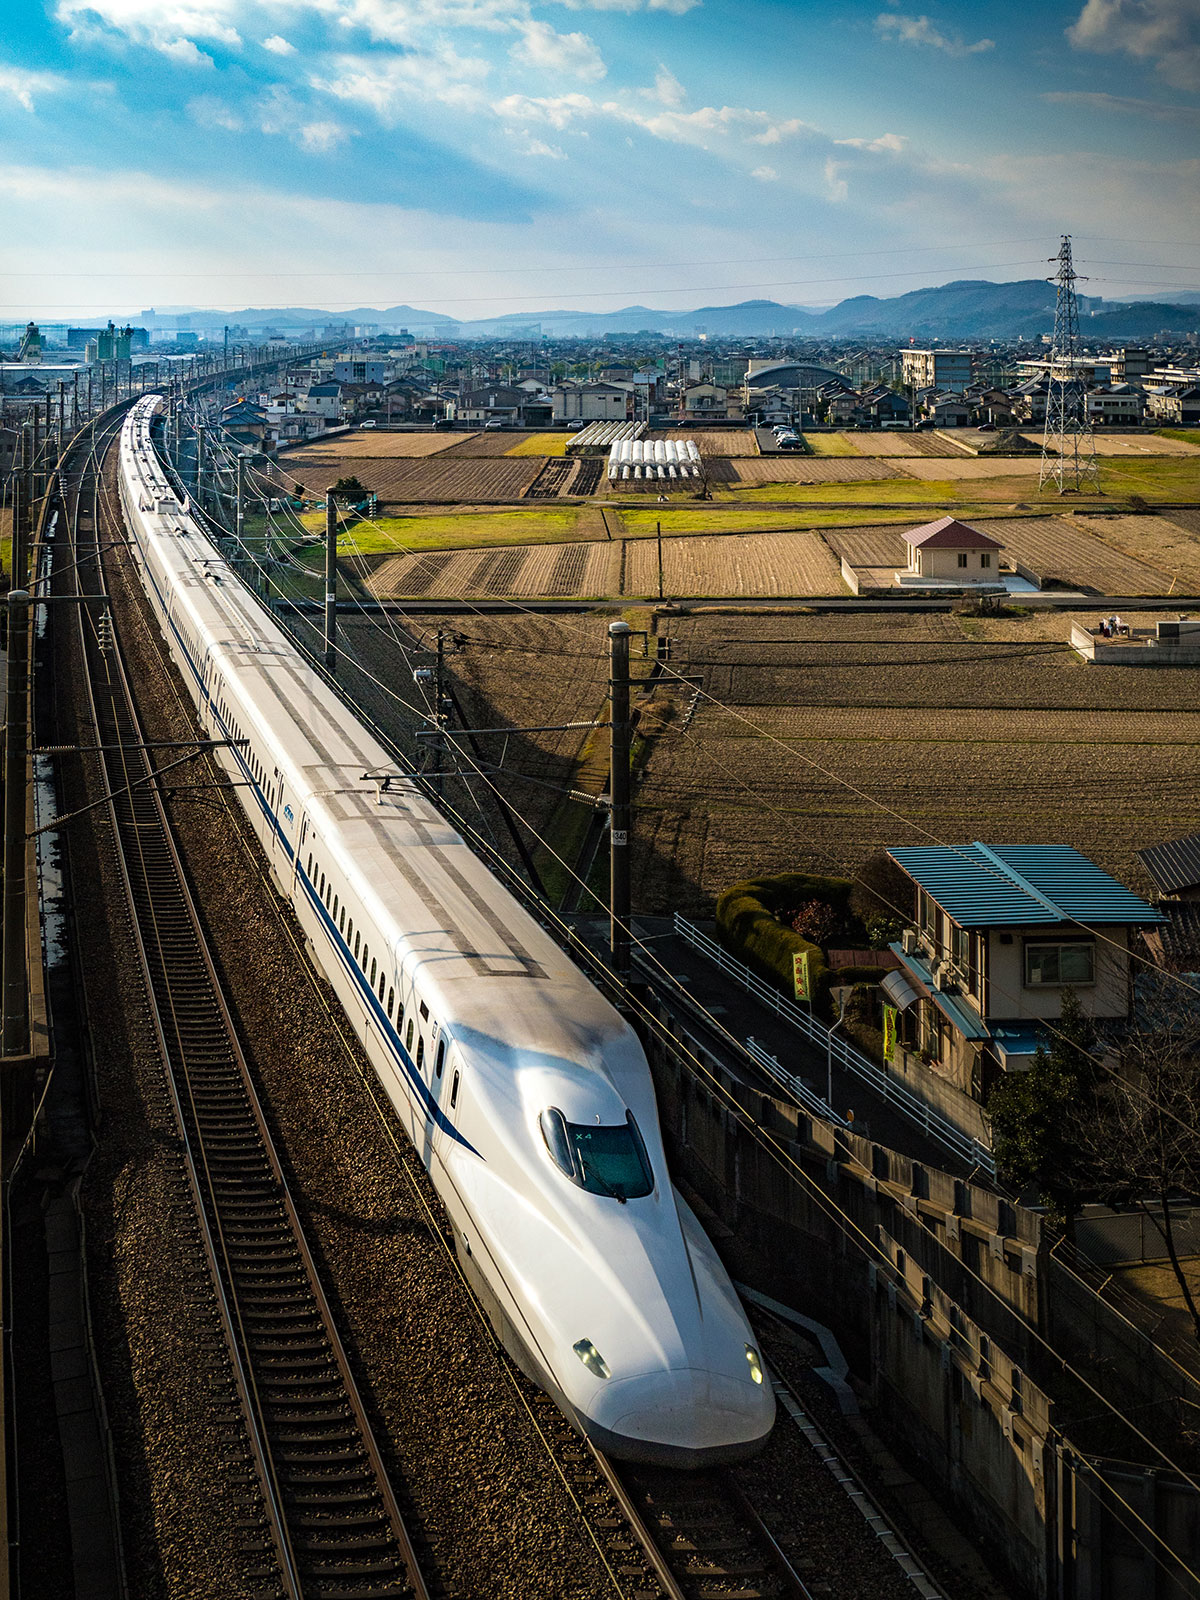 List Of Synonyms And Antonyms Of The Word Shinkansen